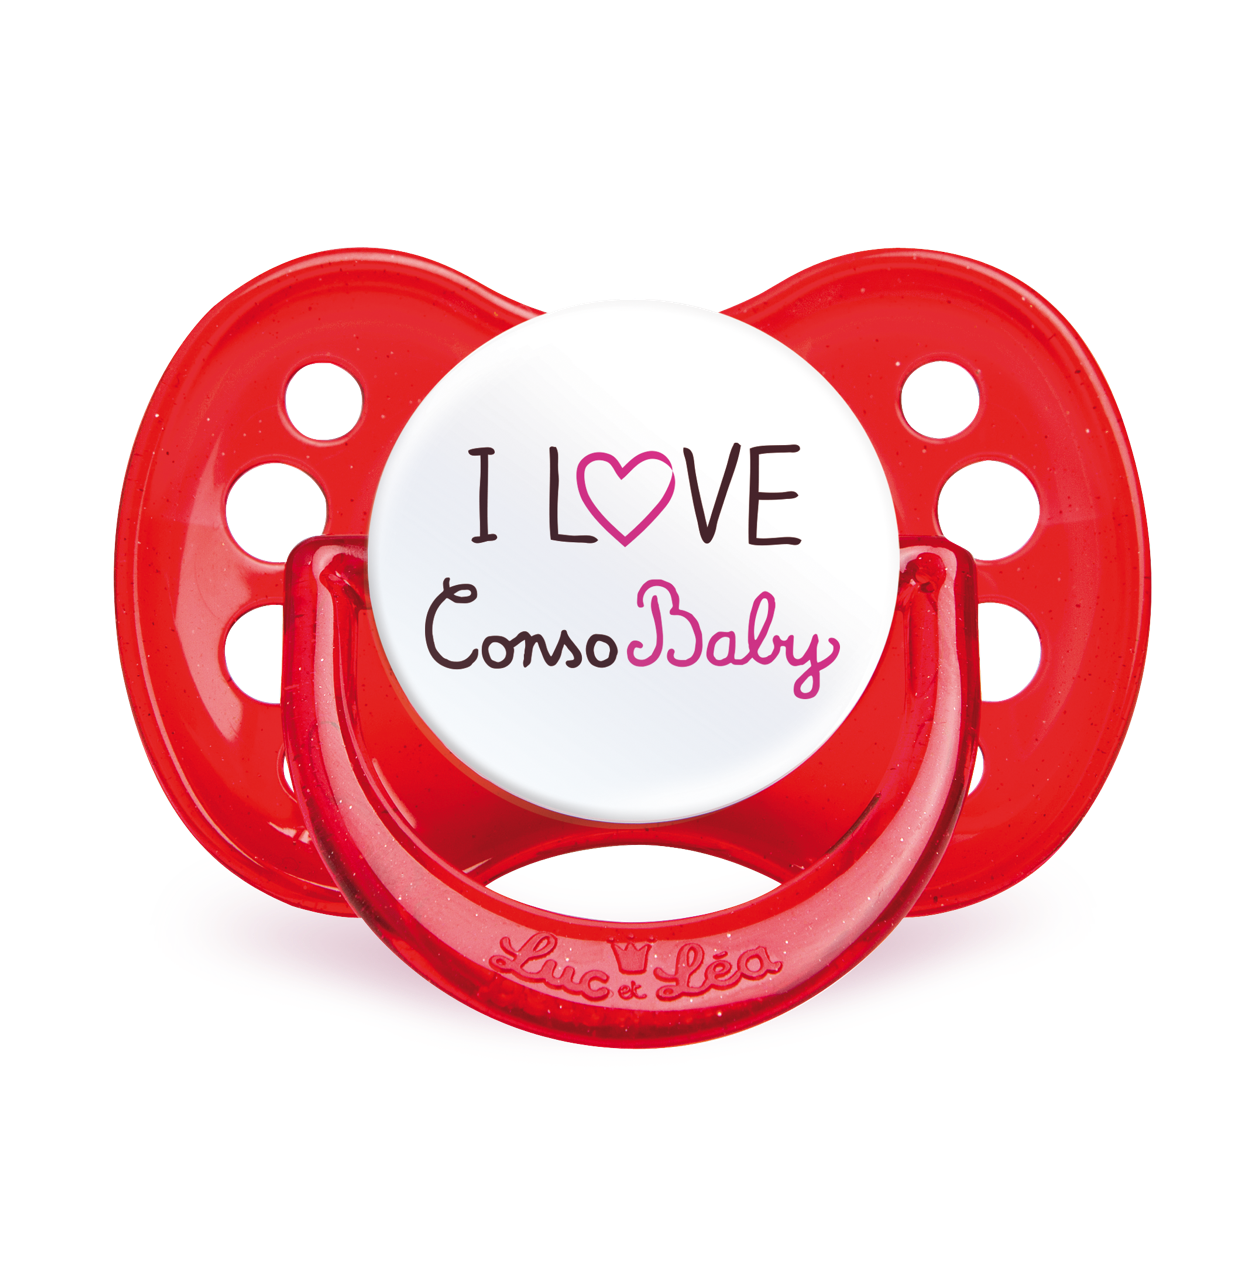 Sucette I Love ConsoBaby